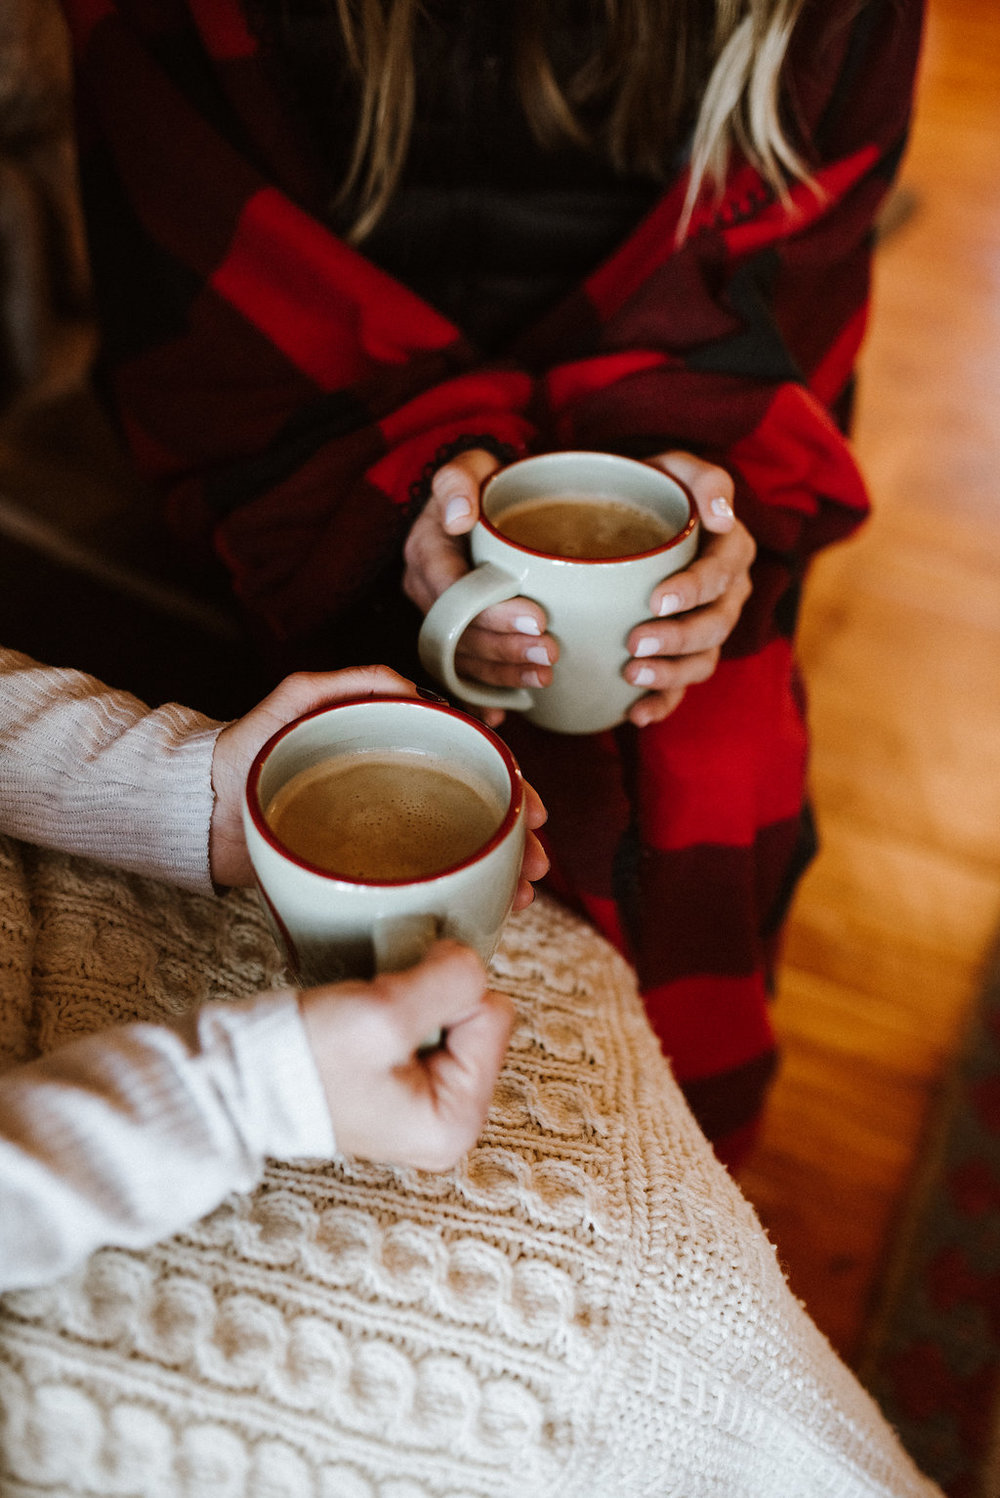 Two women sharing a cozy cup of hot chocolate indoors